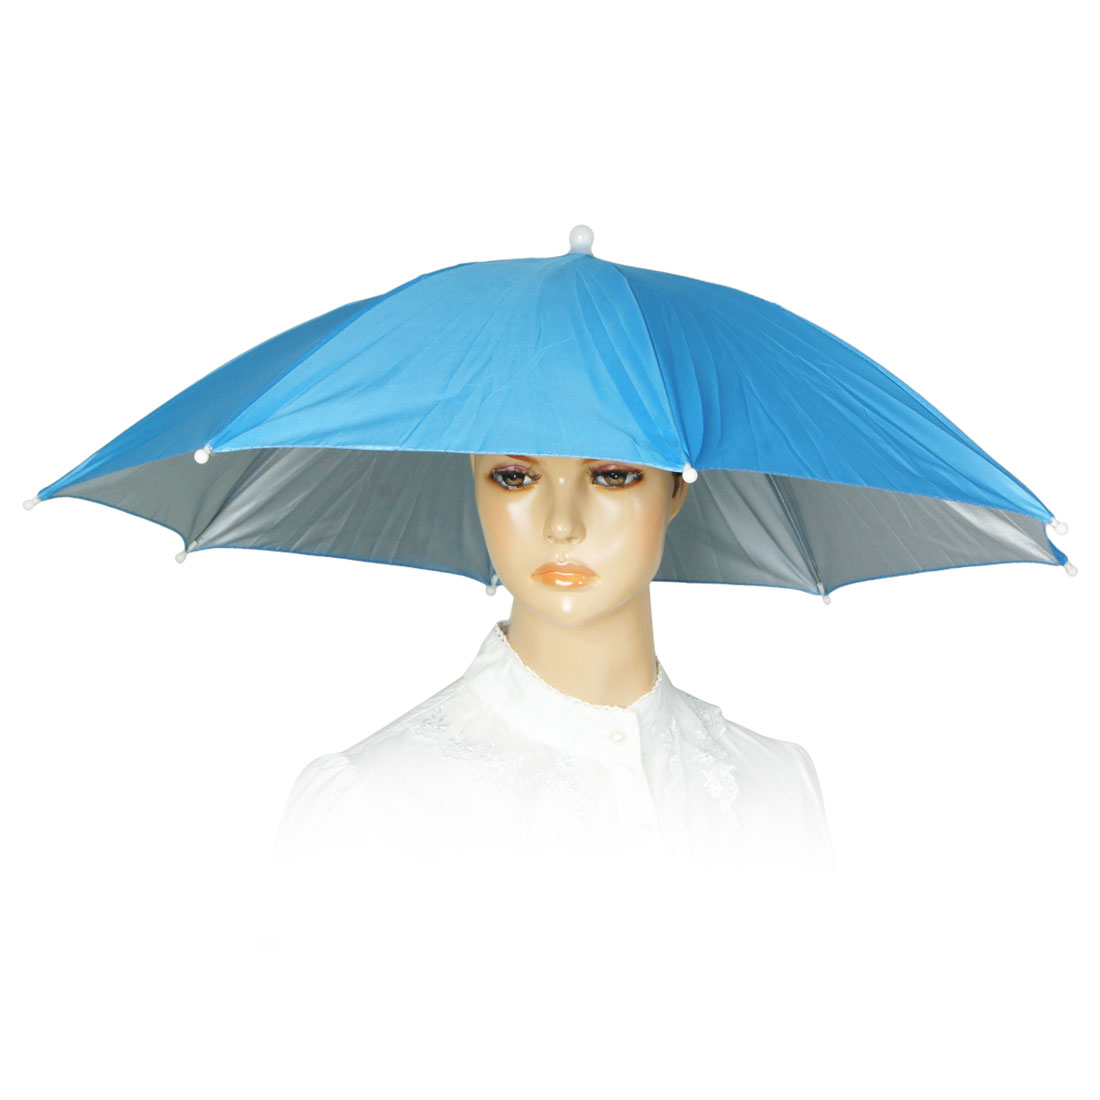 Blue Elastic Band Sun Rain Umbrella Hat for Picnic Camping Fishing Beach